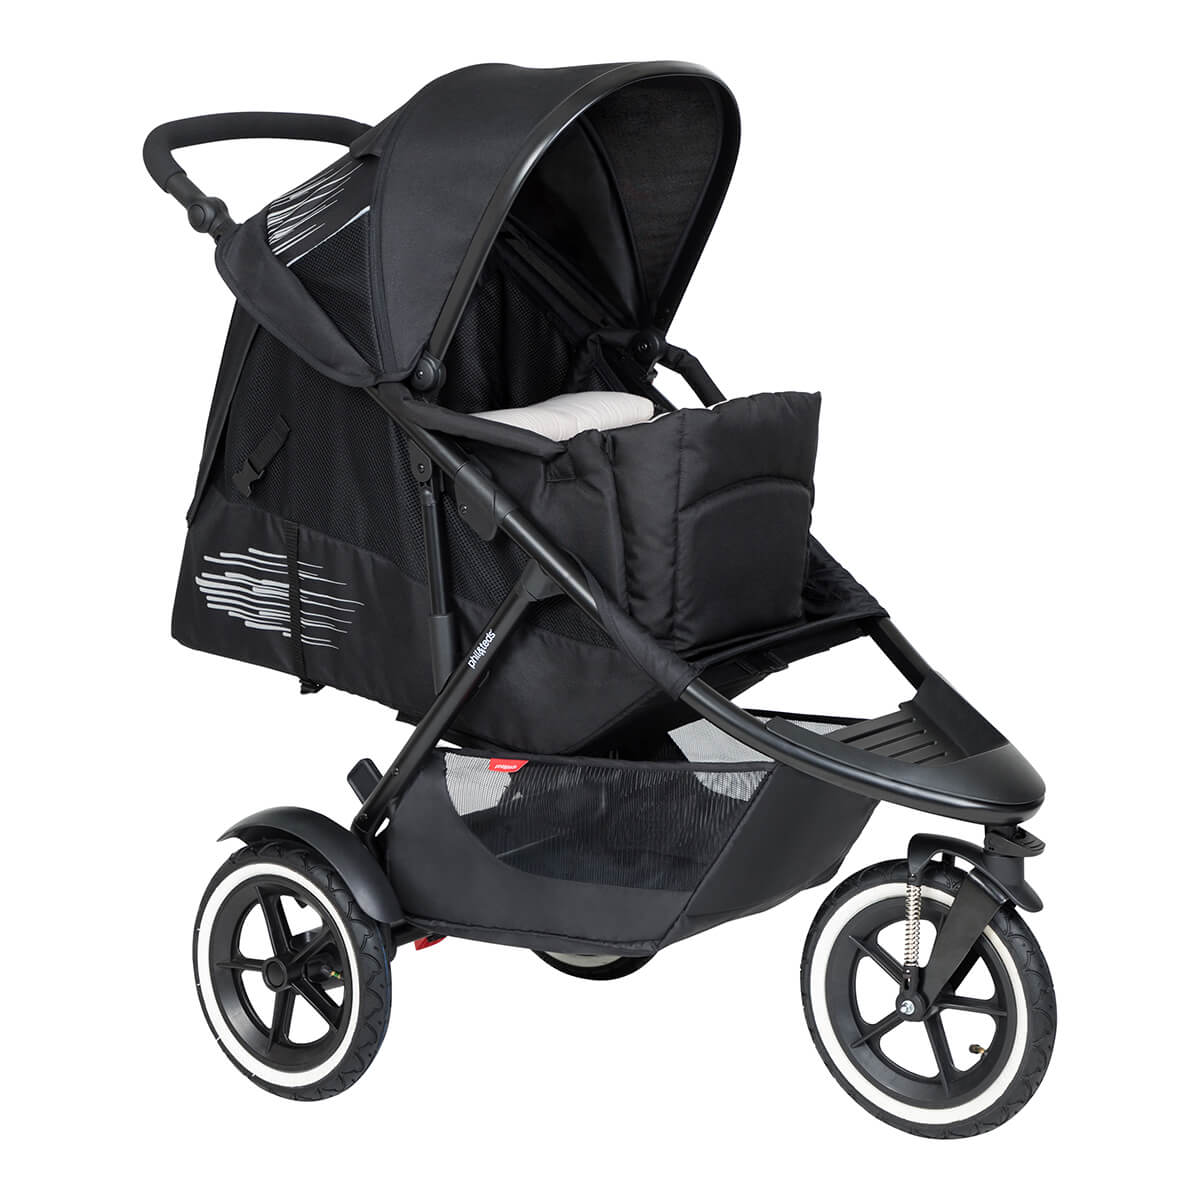 https://cdn.accentuate.io/4509867278433/19793938874538/philteds-sport-buggy-with-cocoon-full-recline-v1626485275519.jpg?1200x1200